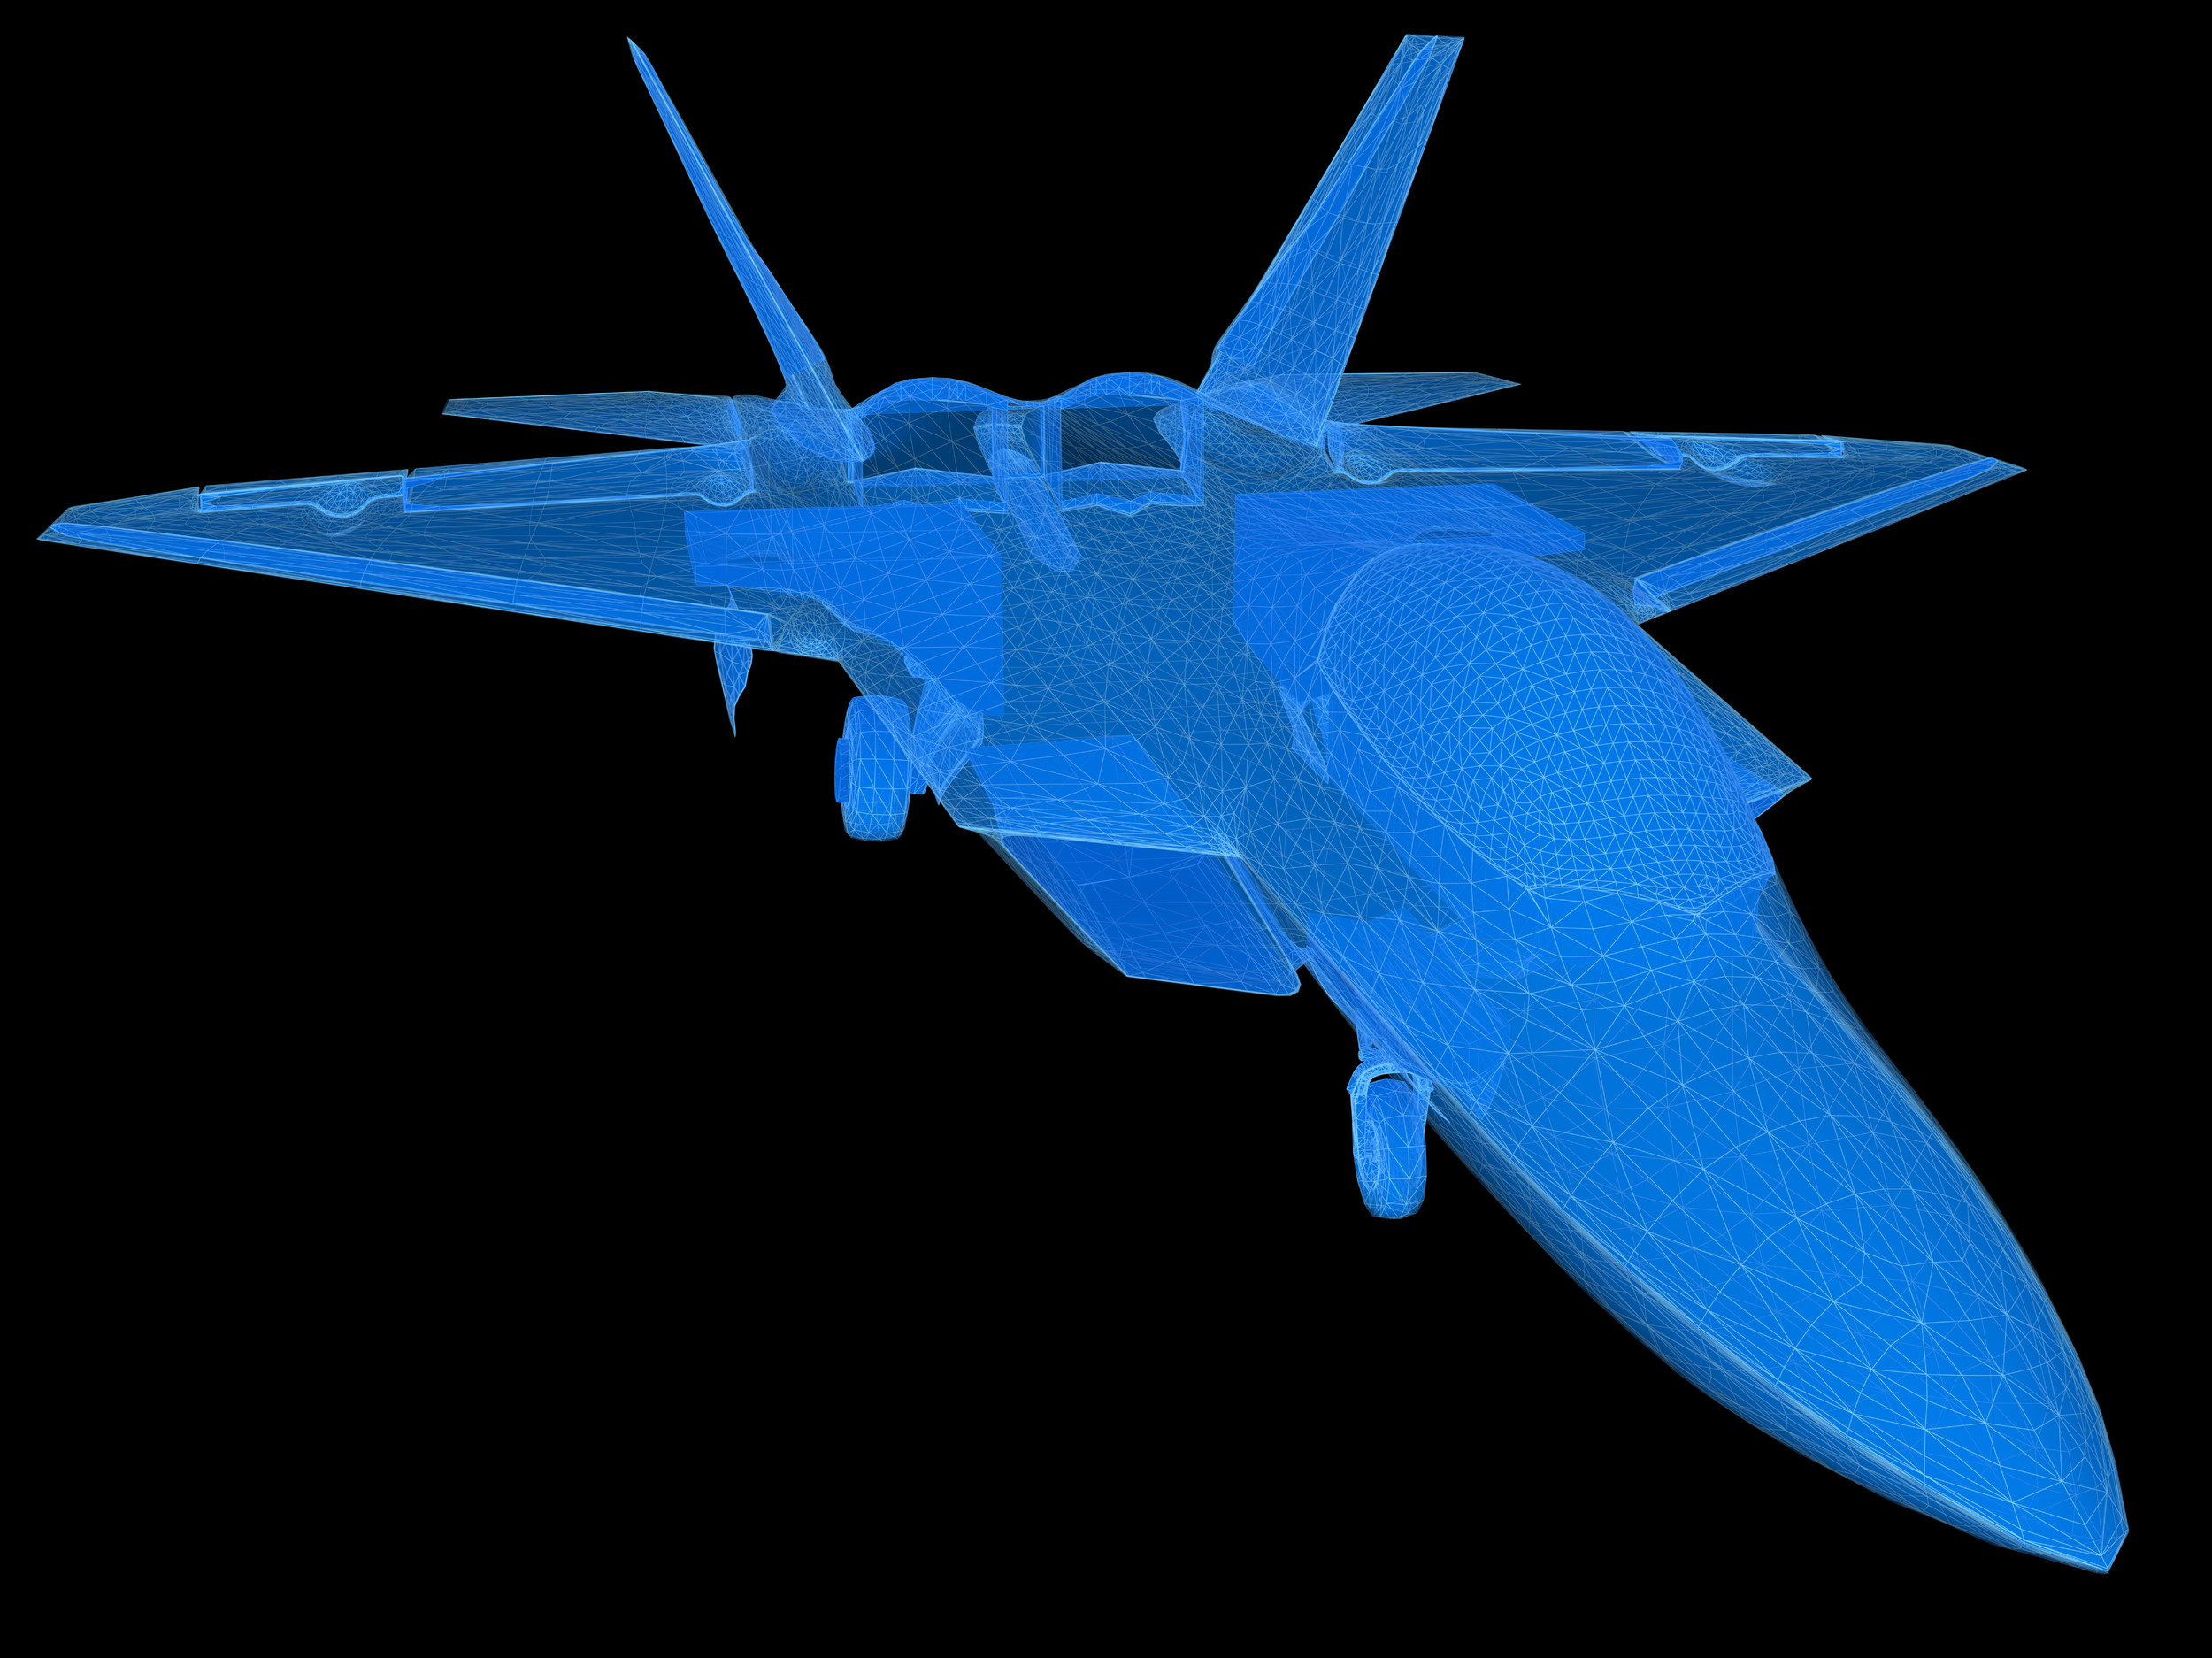 The U.S. Air Force Looks To Advanced Manufacturing To Keep Existing Aircraft Flying And Develop Next-Gen Capabilities